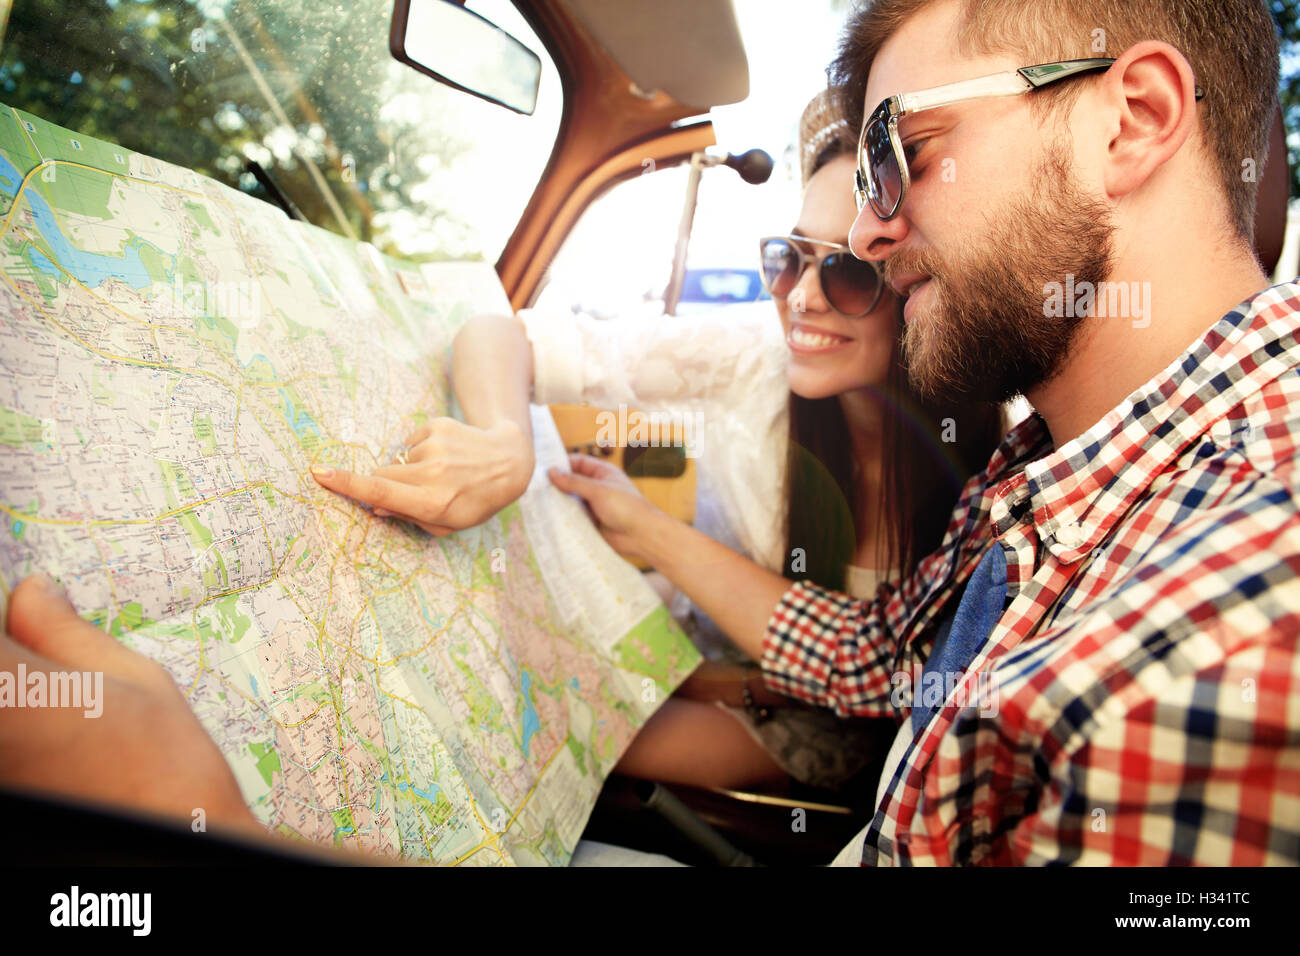 Young loving couple planning their romantic adventure - Stock Image